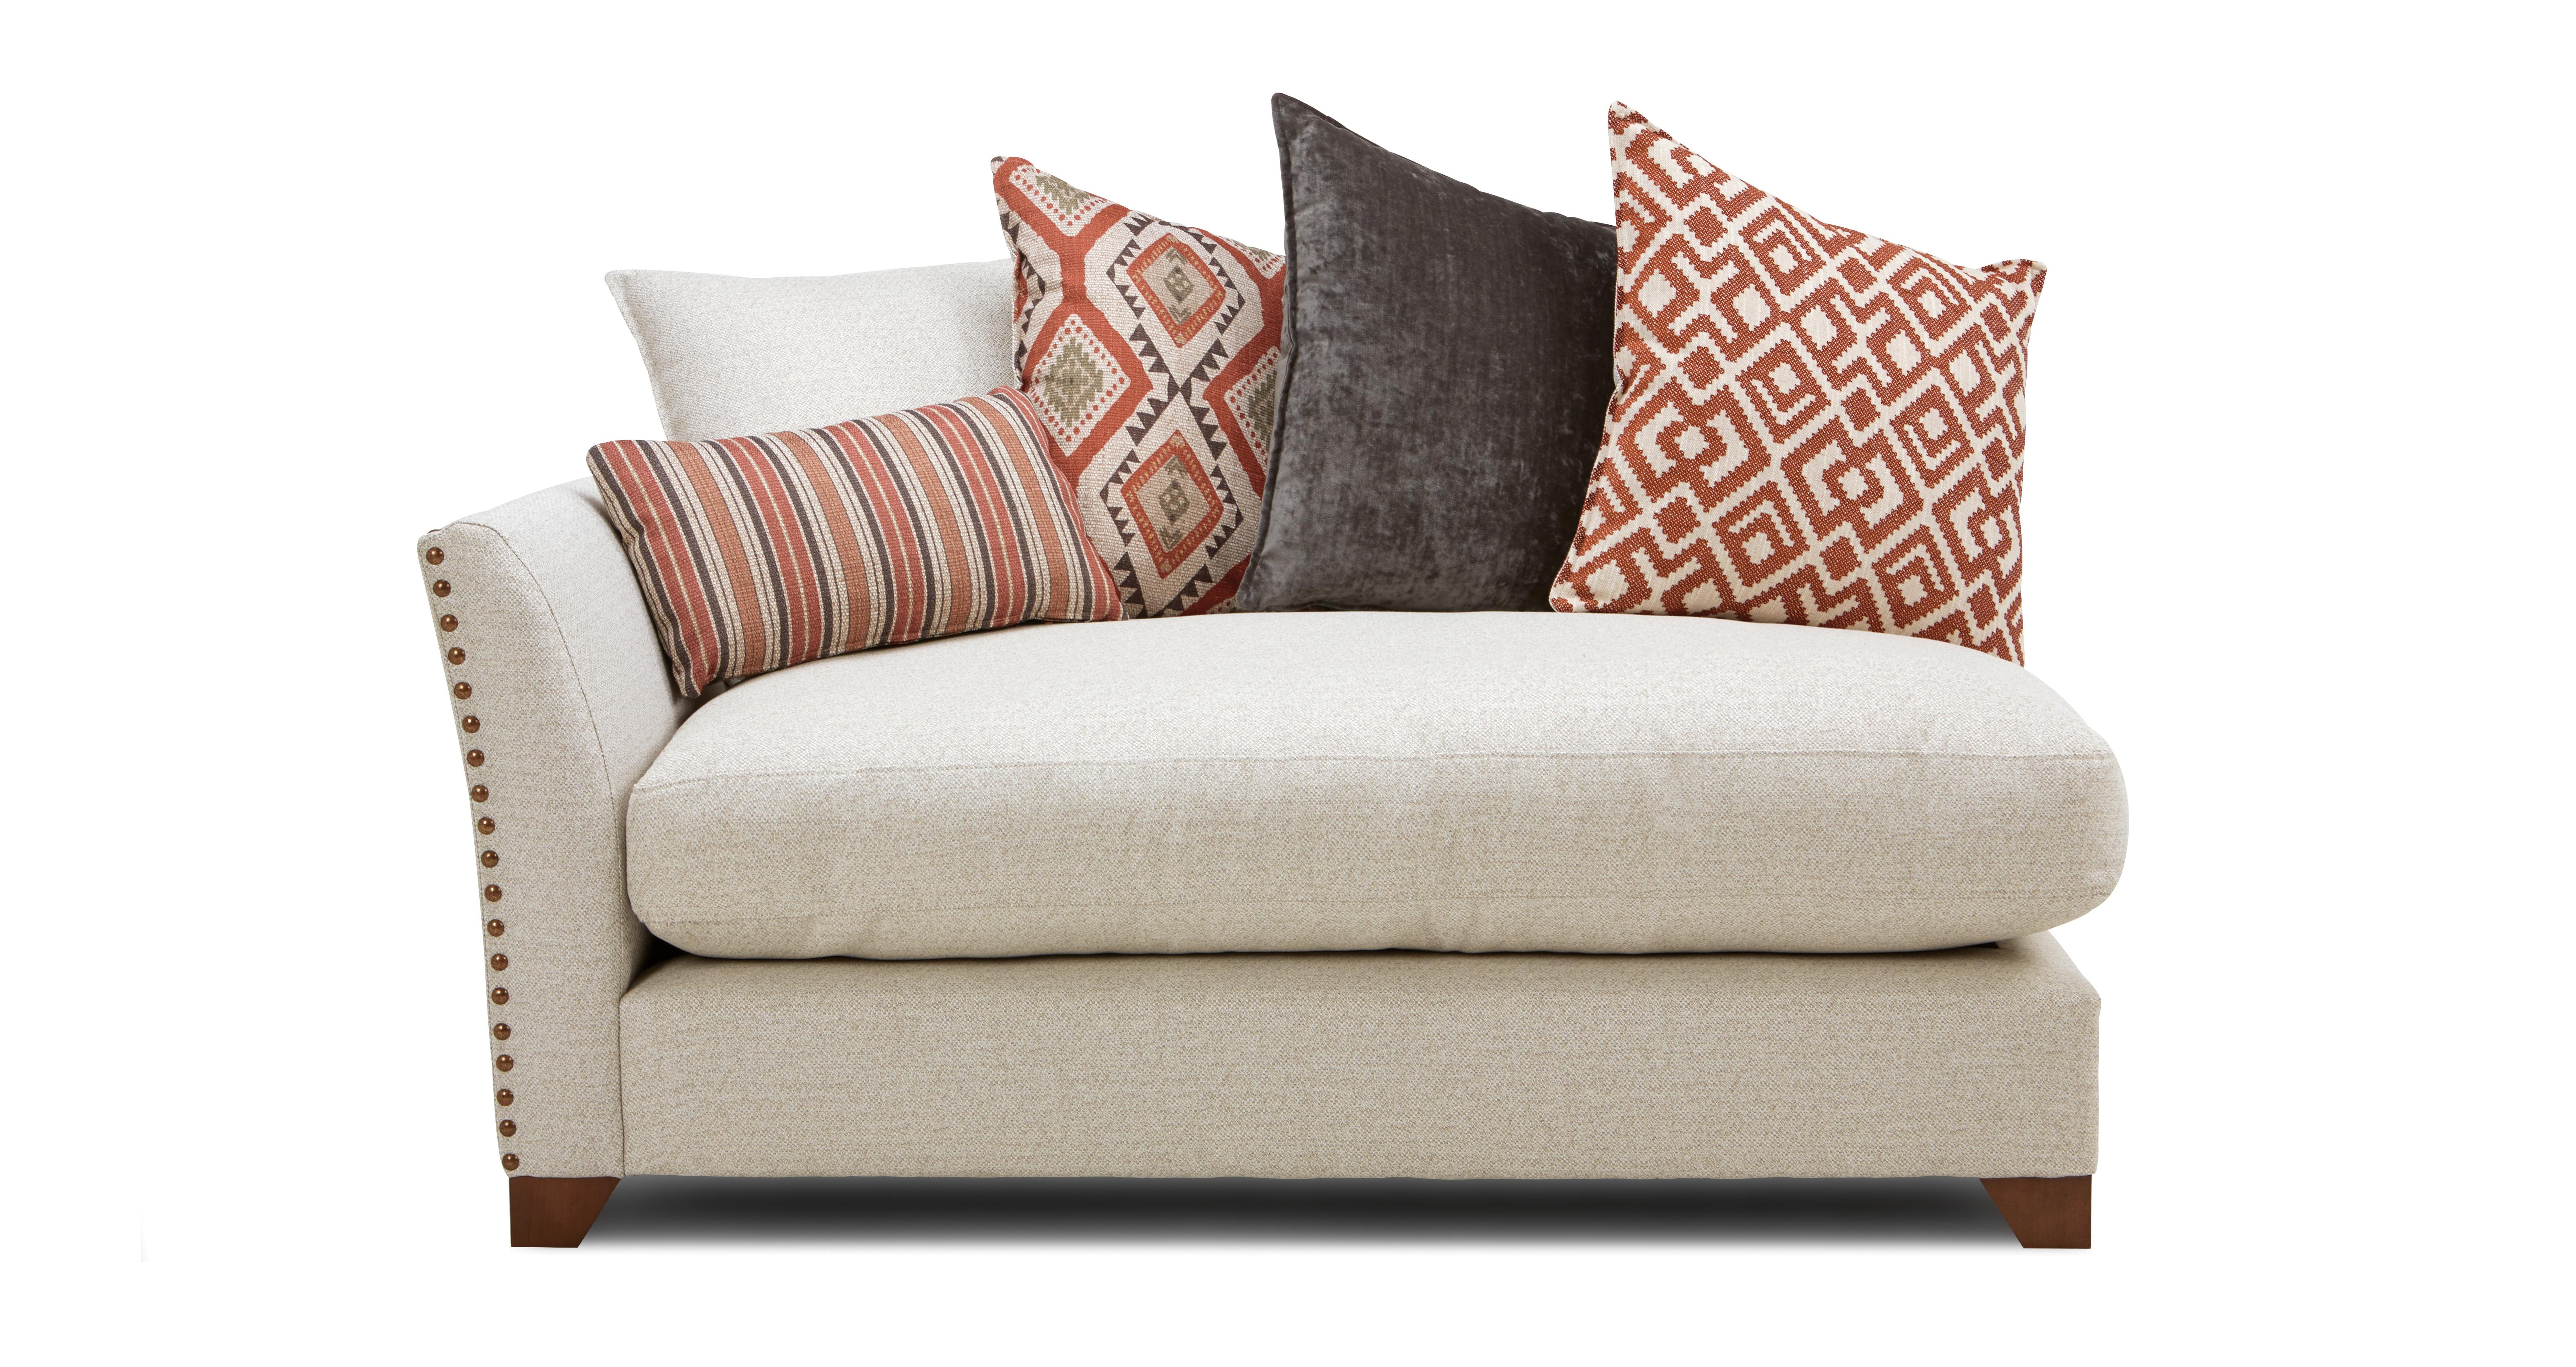 Fabric Corner Sofas In A Range Great Styles Browns